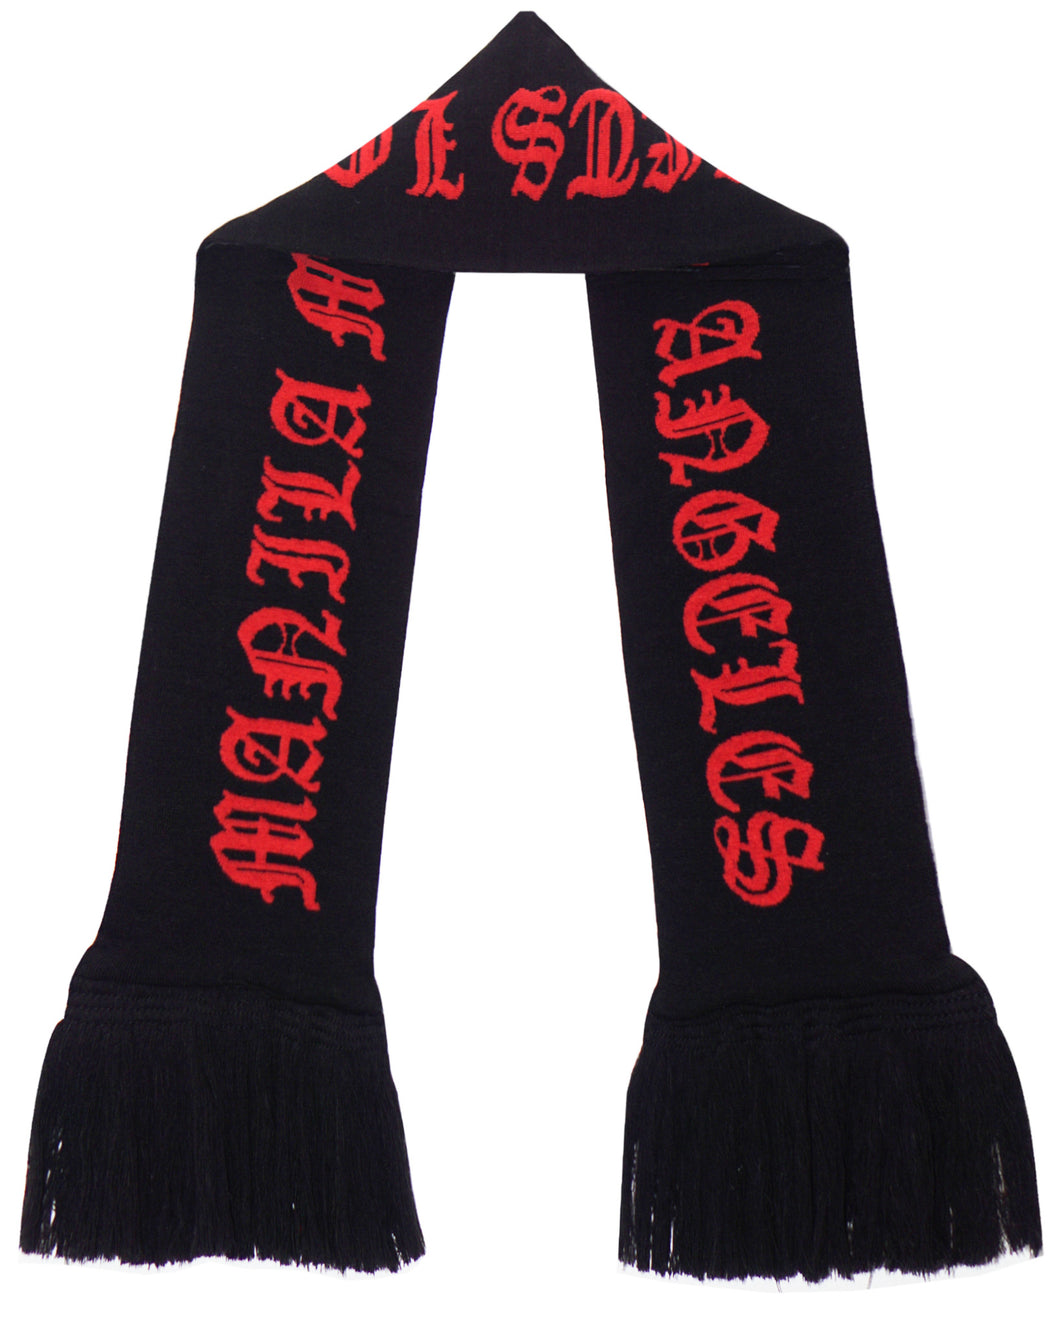 ANTHRACITE/RARRI RED MN+LA KNITTED SCARF